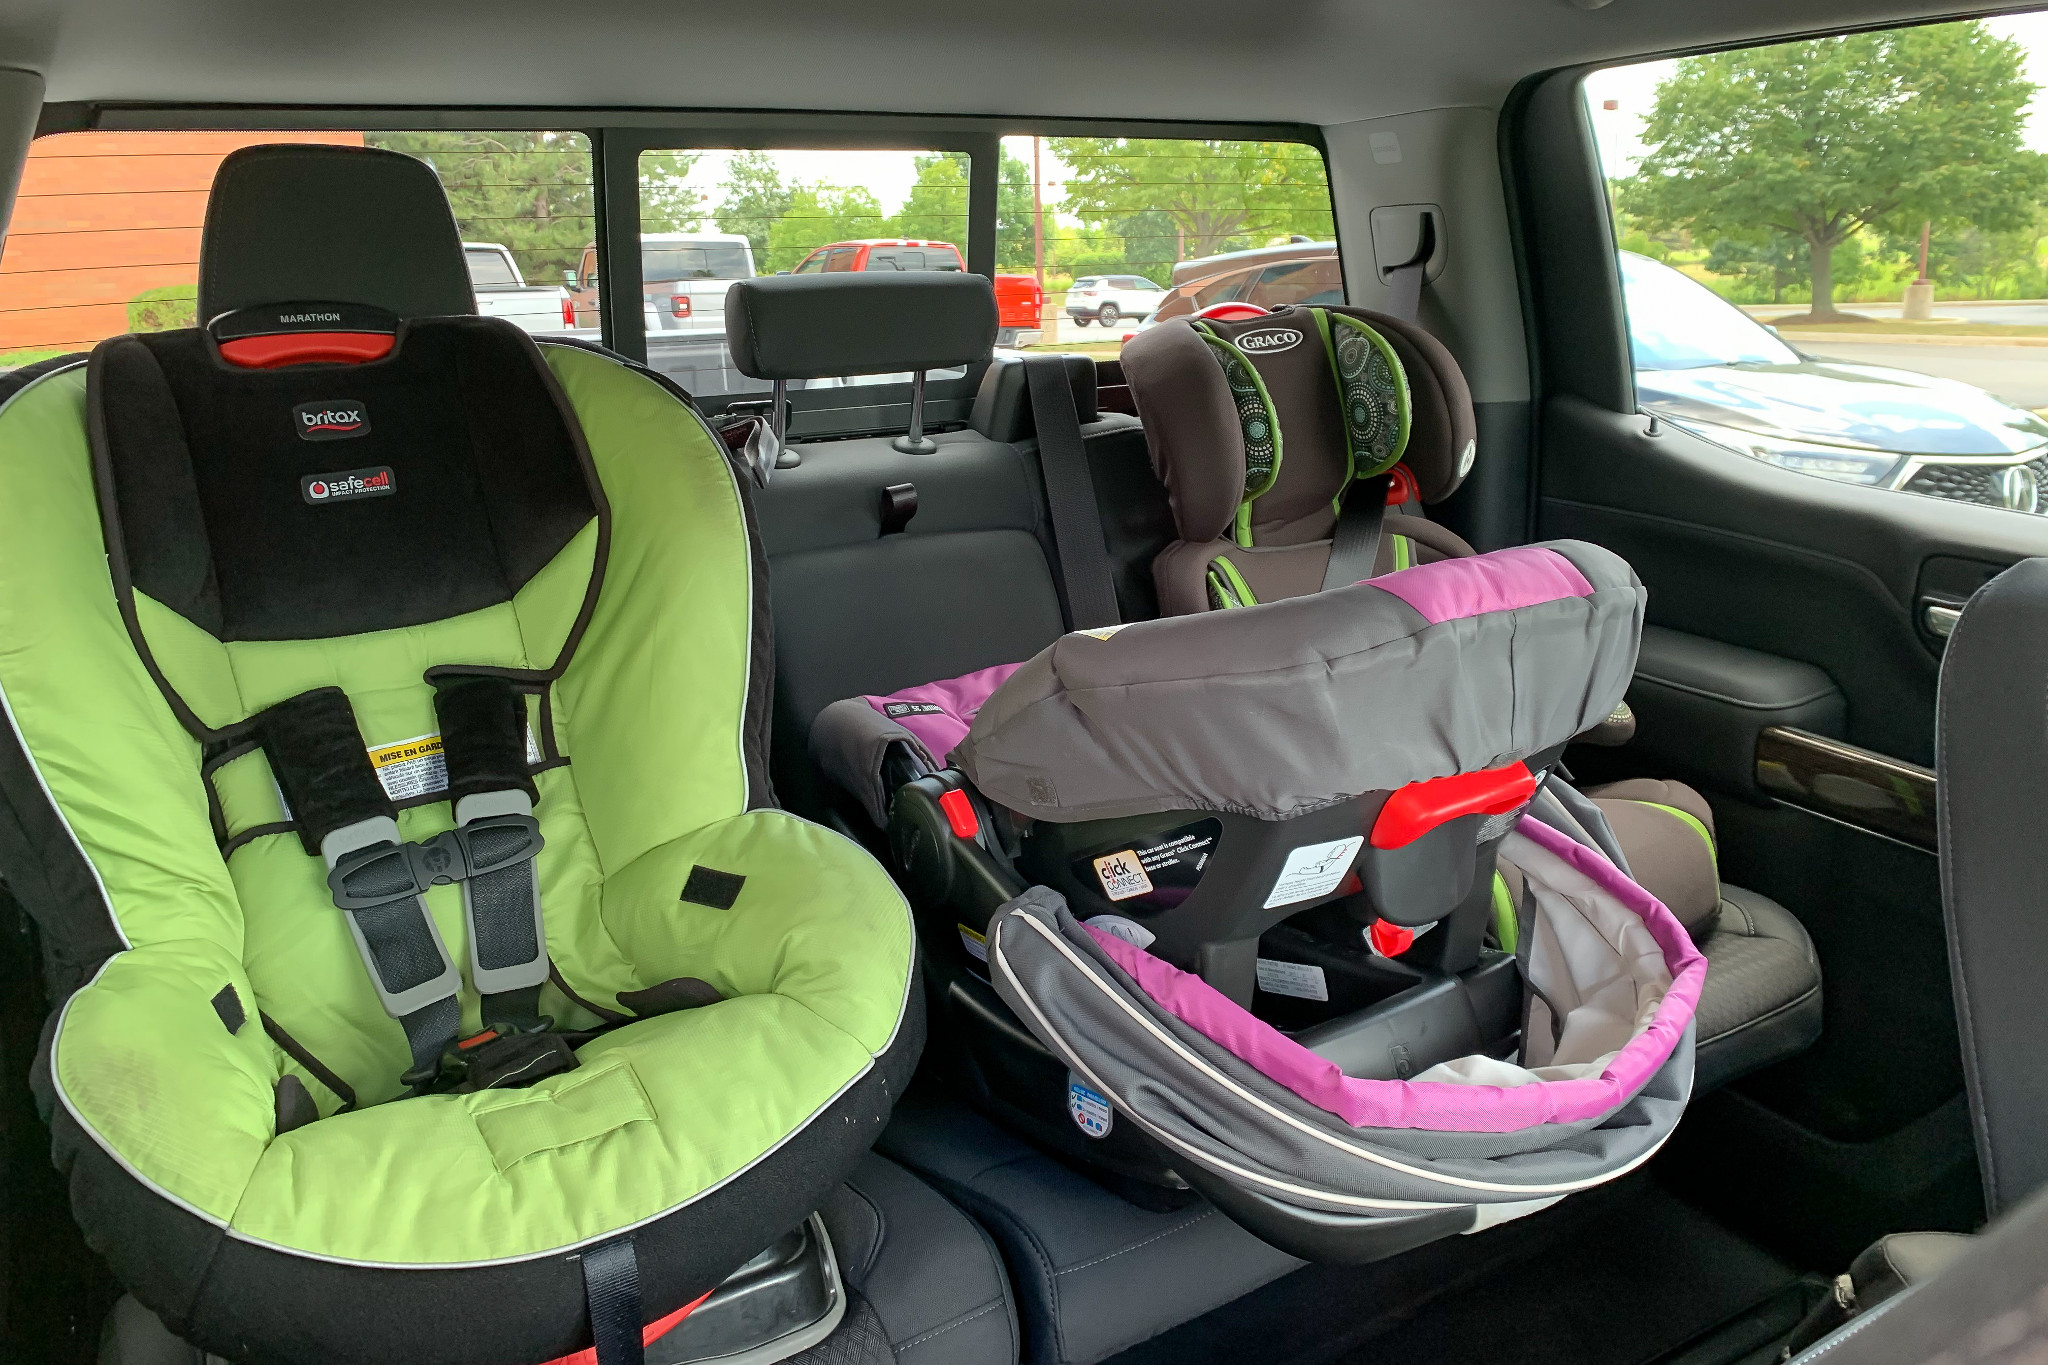 Baby Car Seat Fitting Service Which Cars Fit Three Car Seats News Cars